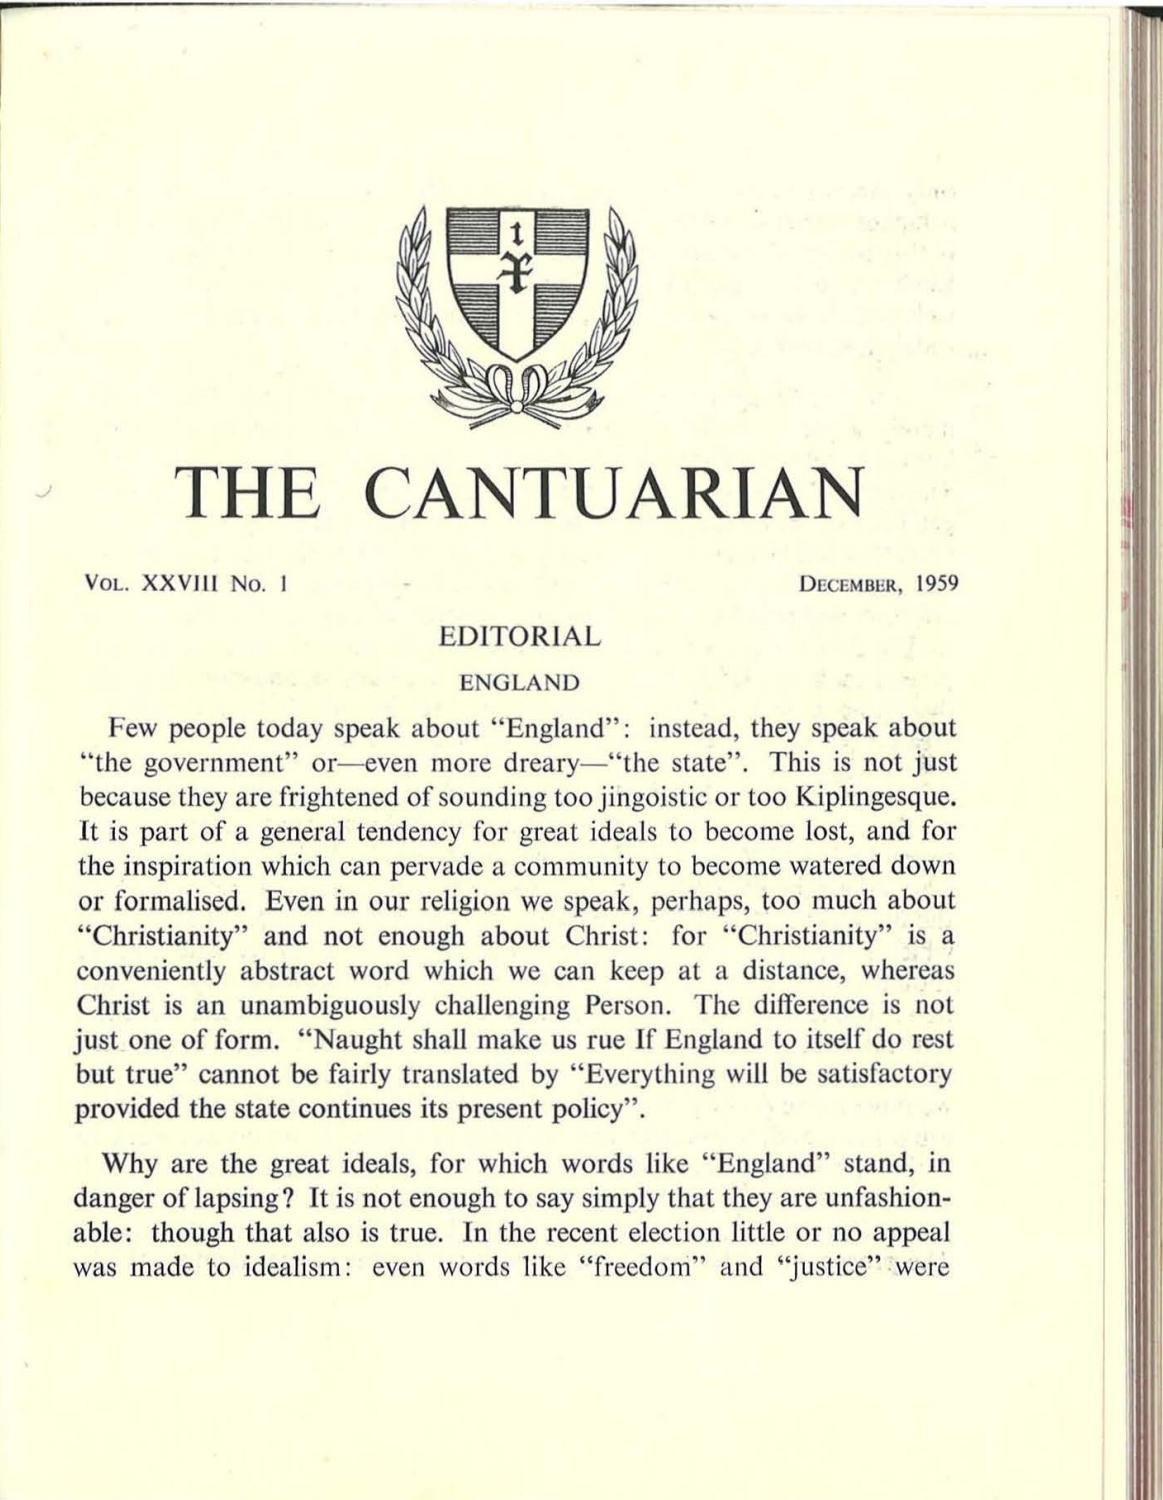 The Cantuarian December 1959 - August 1960 by OKS